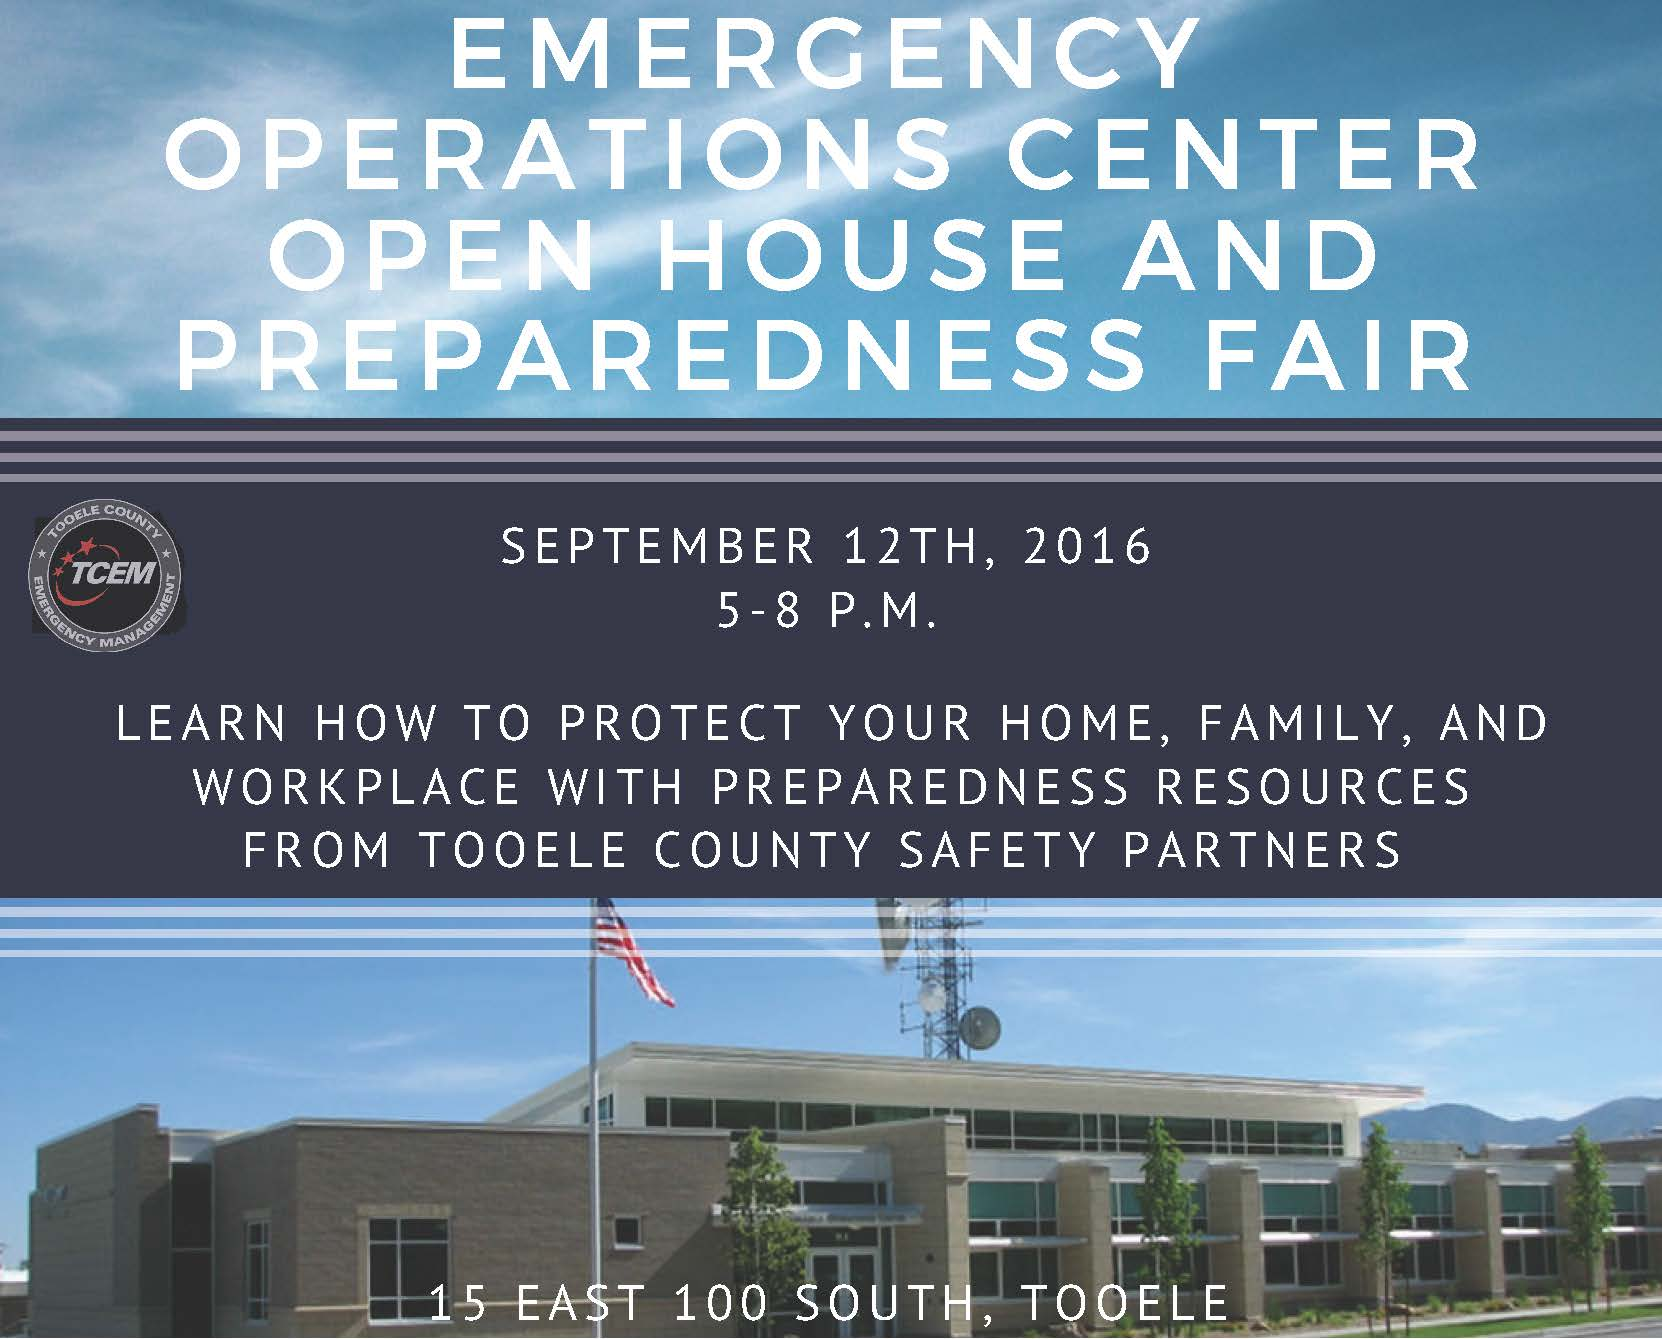 Emergency Operations Center Open House and Preparedness Fair @ Emergency Management Operations Center | Tooele | Utah | United States